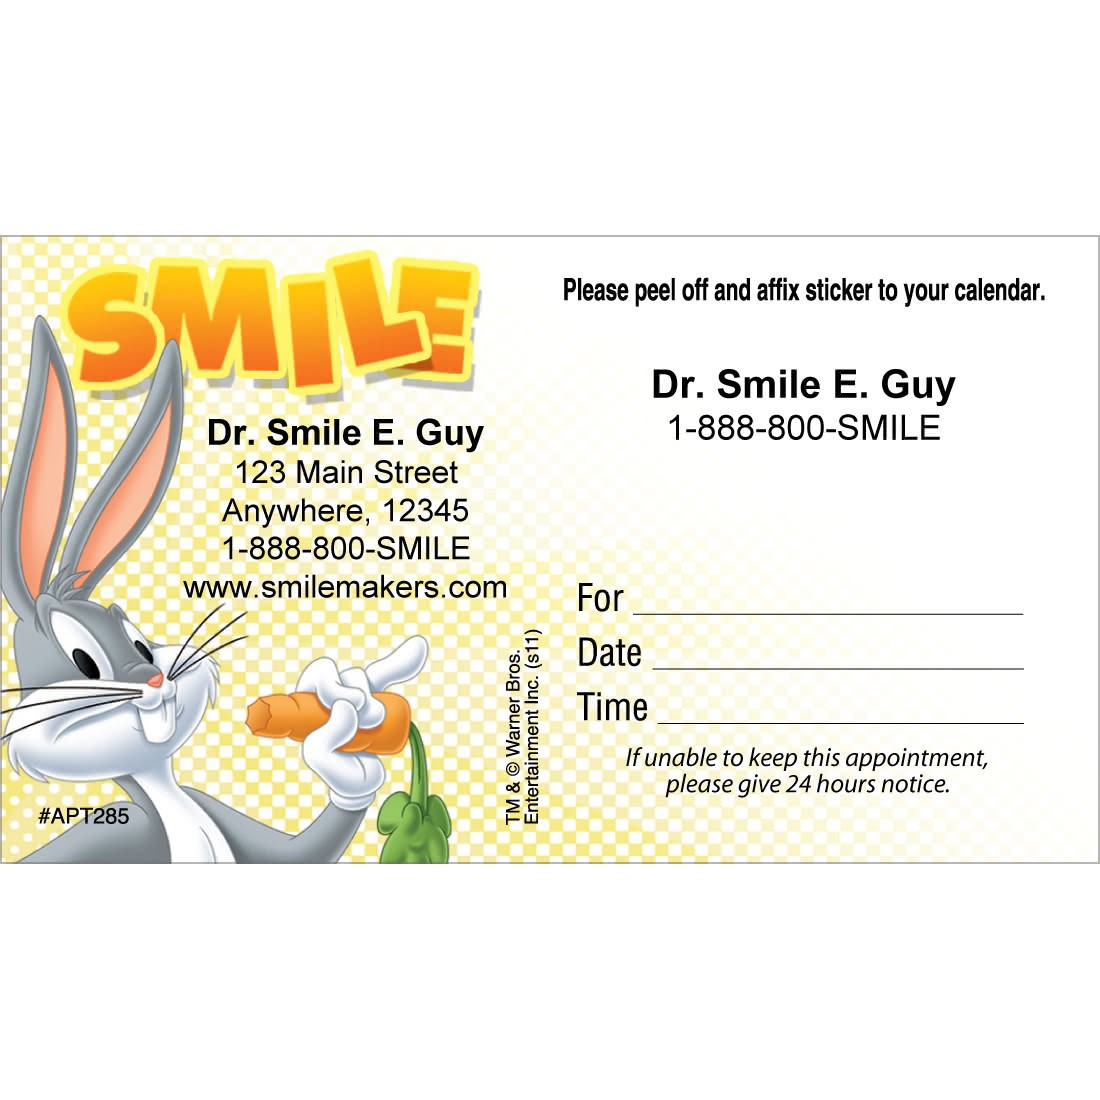 Custom Bugs Bunny Smile Sticker Appointment Cards [image]